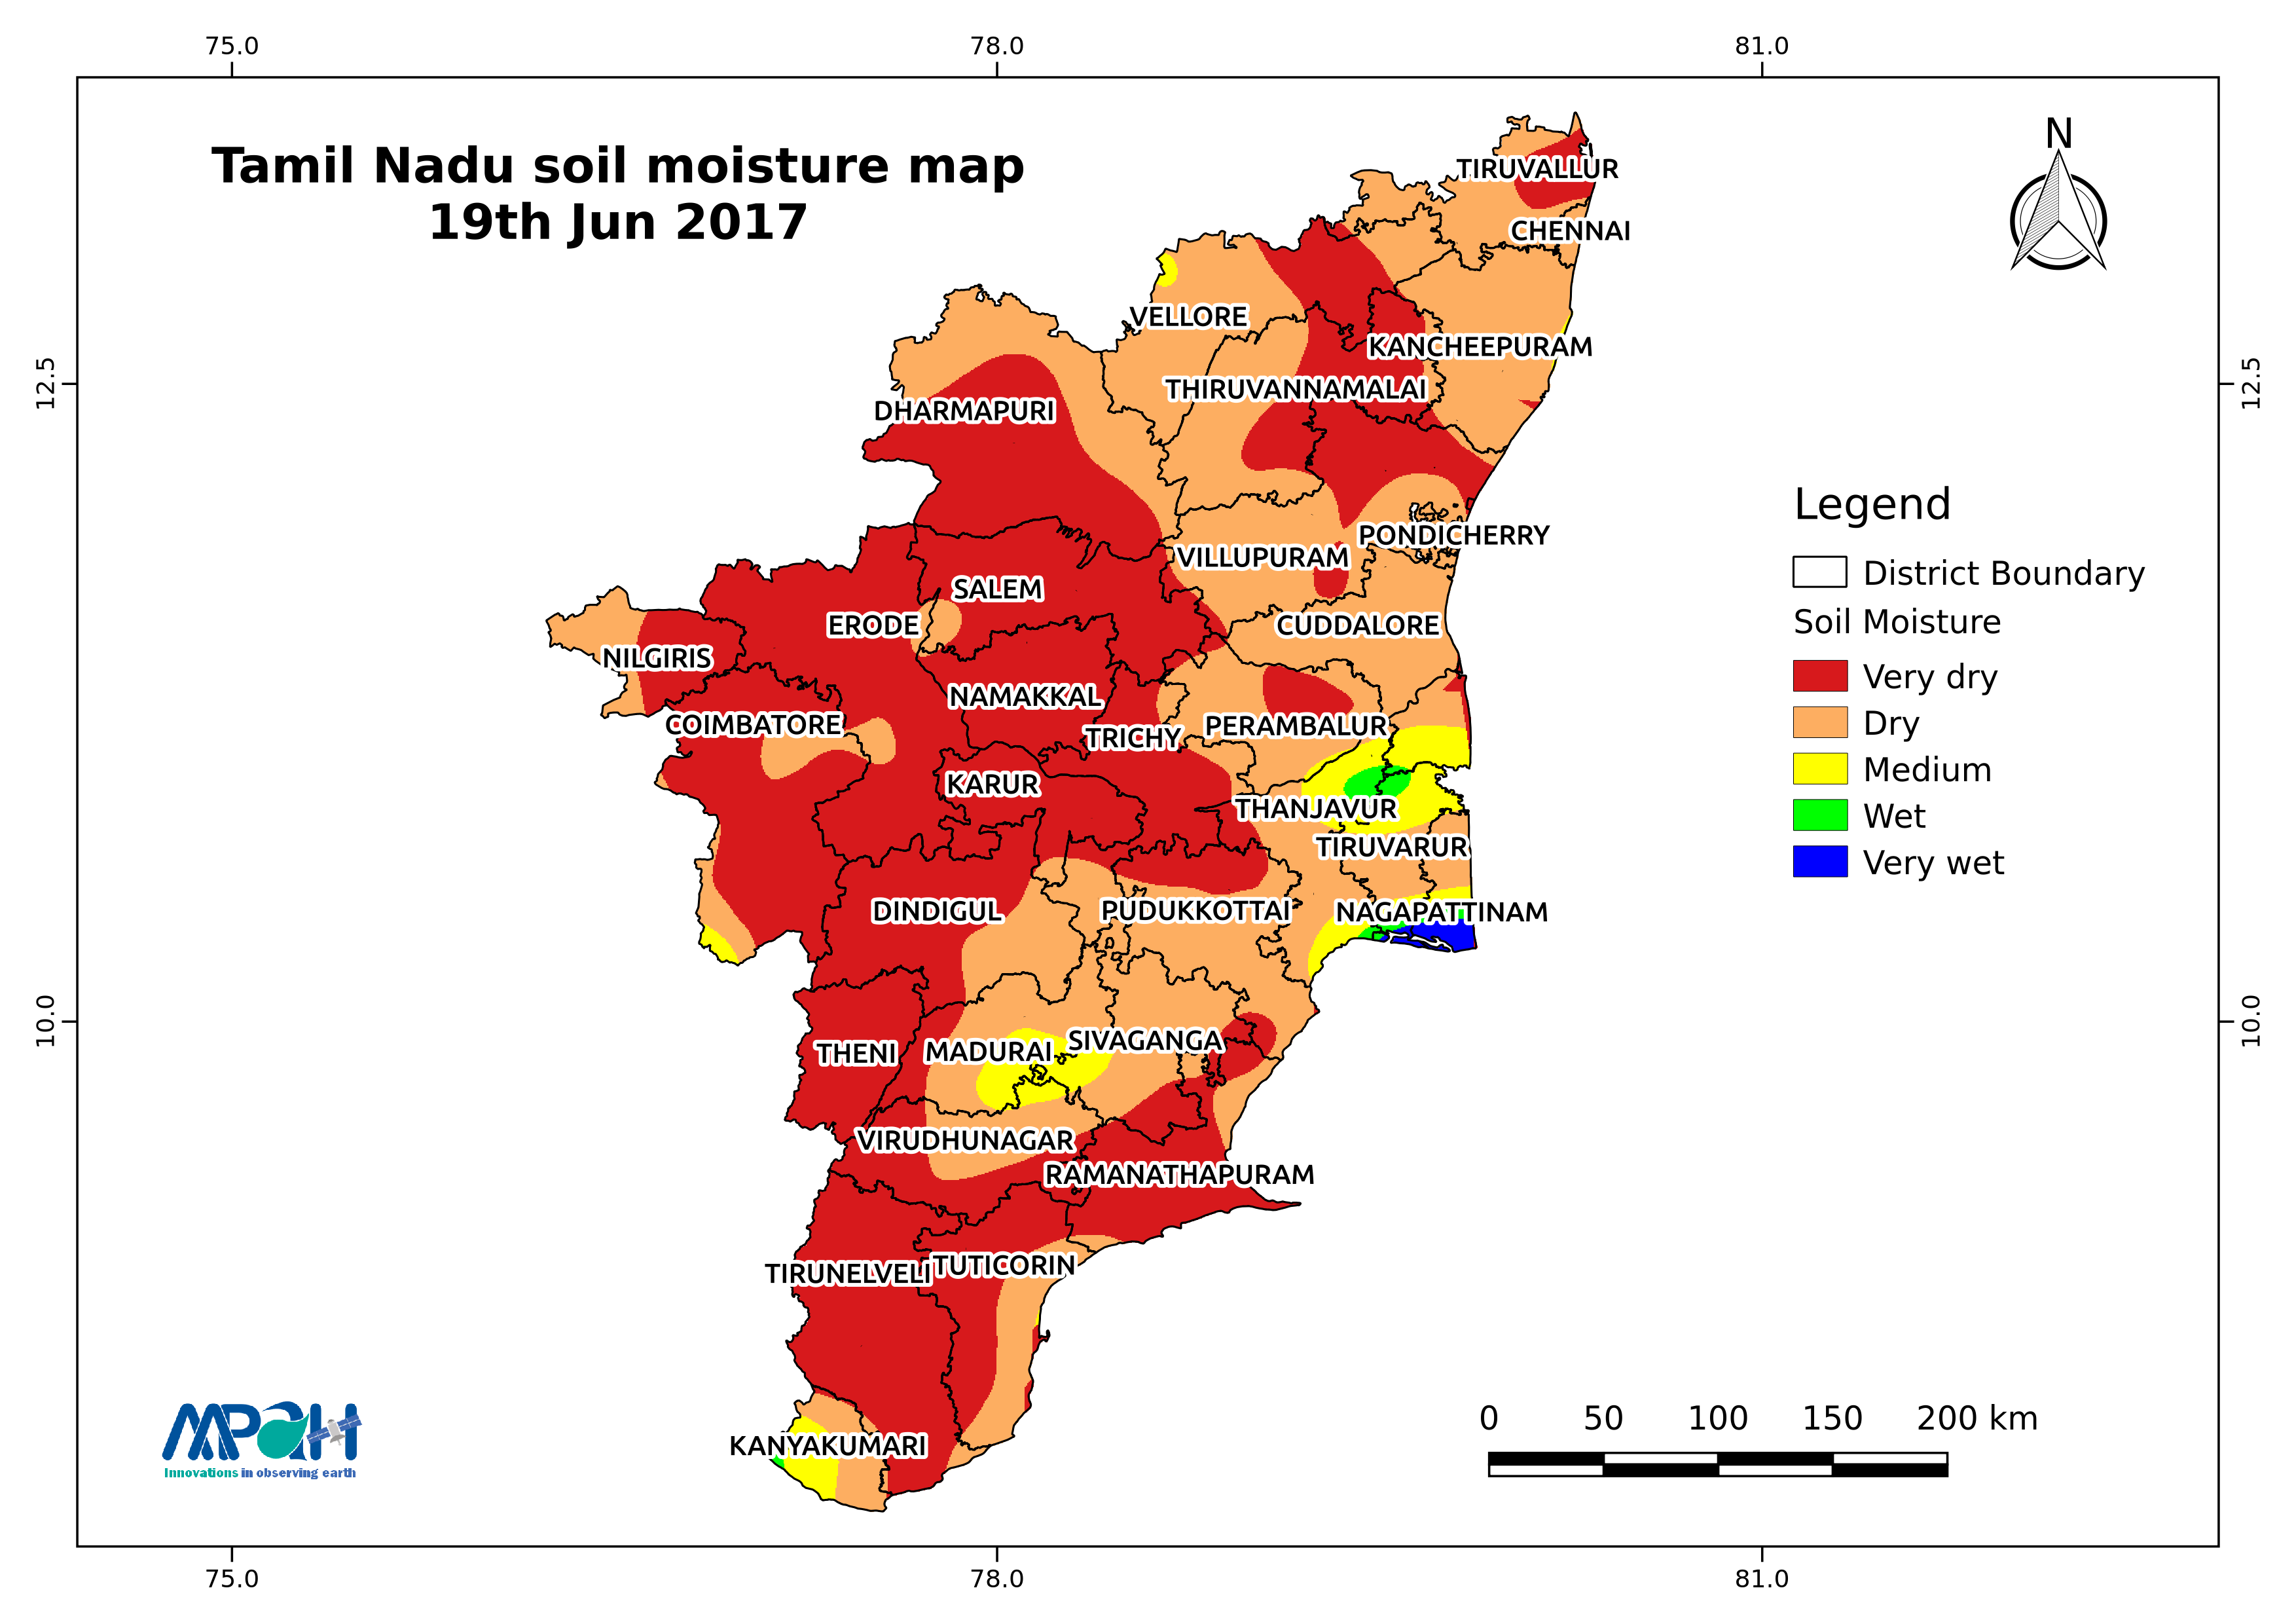 Soil moisture map for the state of tamil nadu aapah innovations soil moisture map for the state of tamil nadu aapah innovations pvt ltd gumiabroncs Image collections